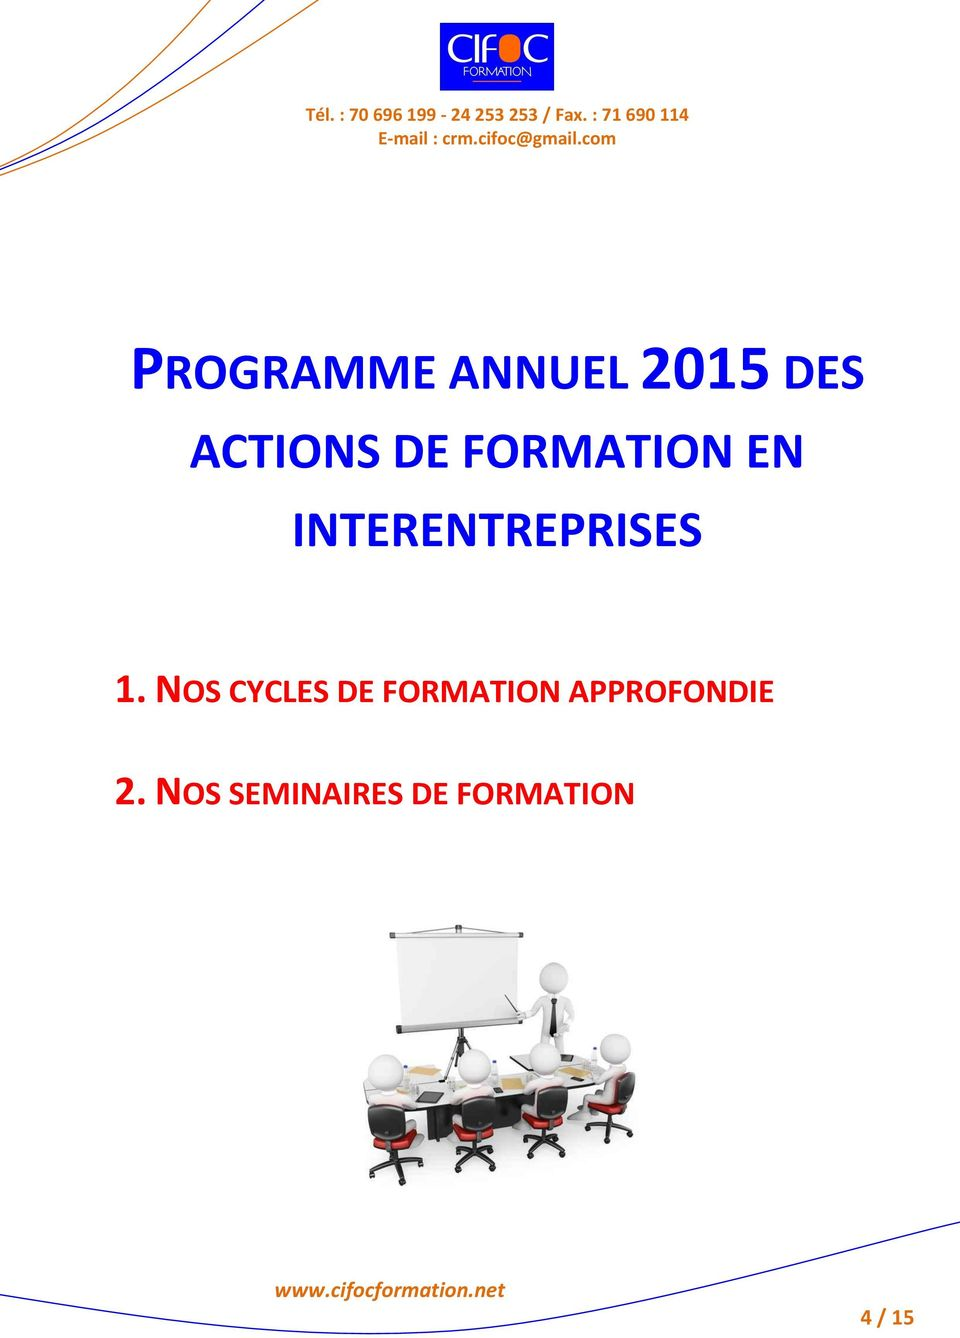 NOS CYCLES DE FORMATION APPROFONDIE